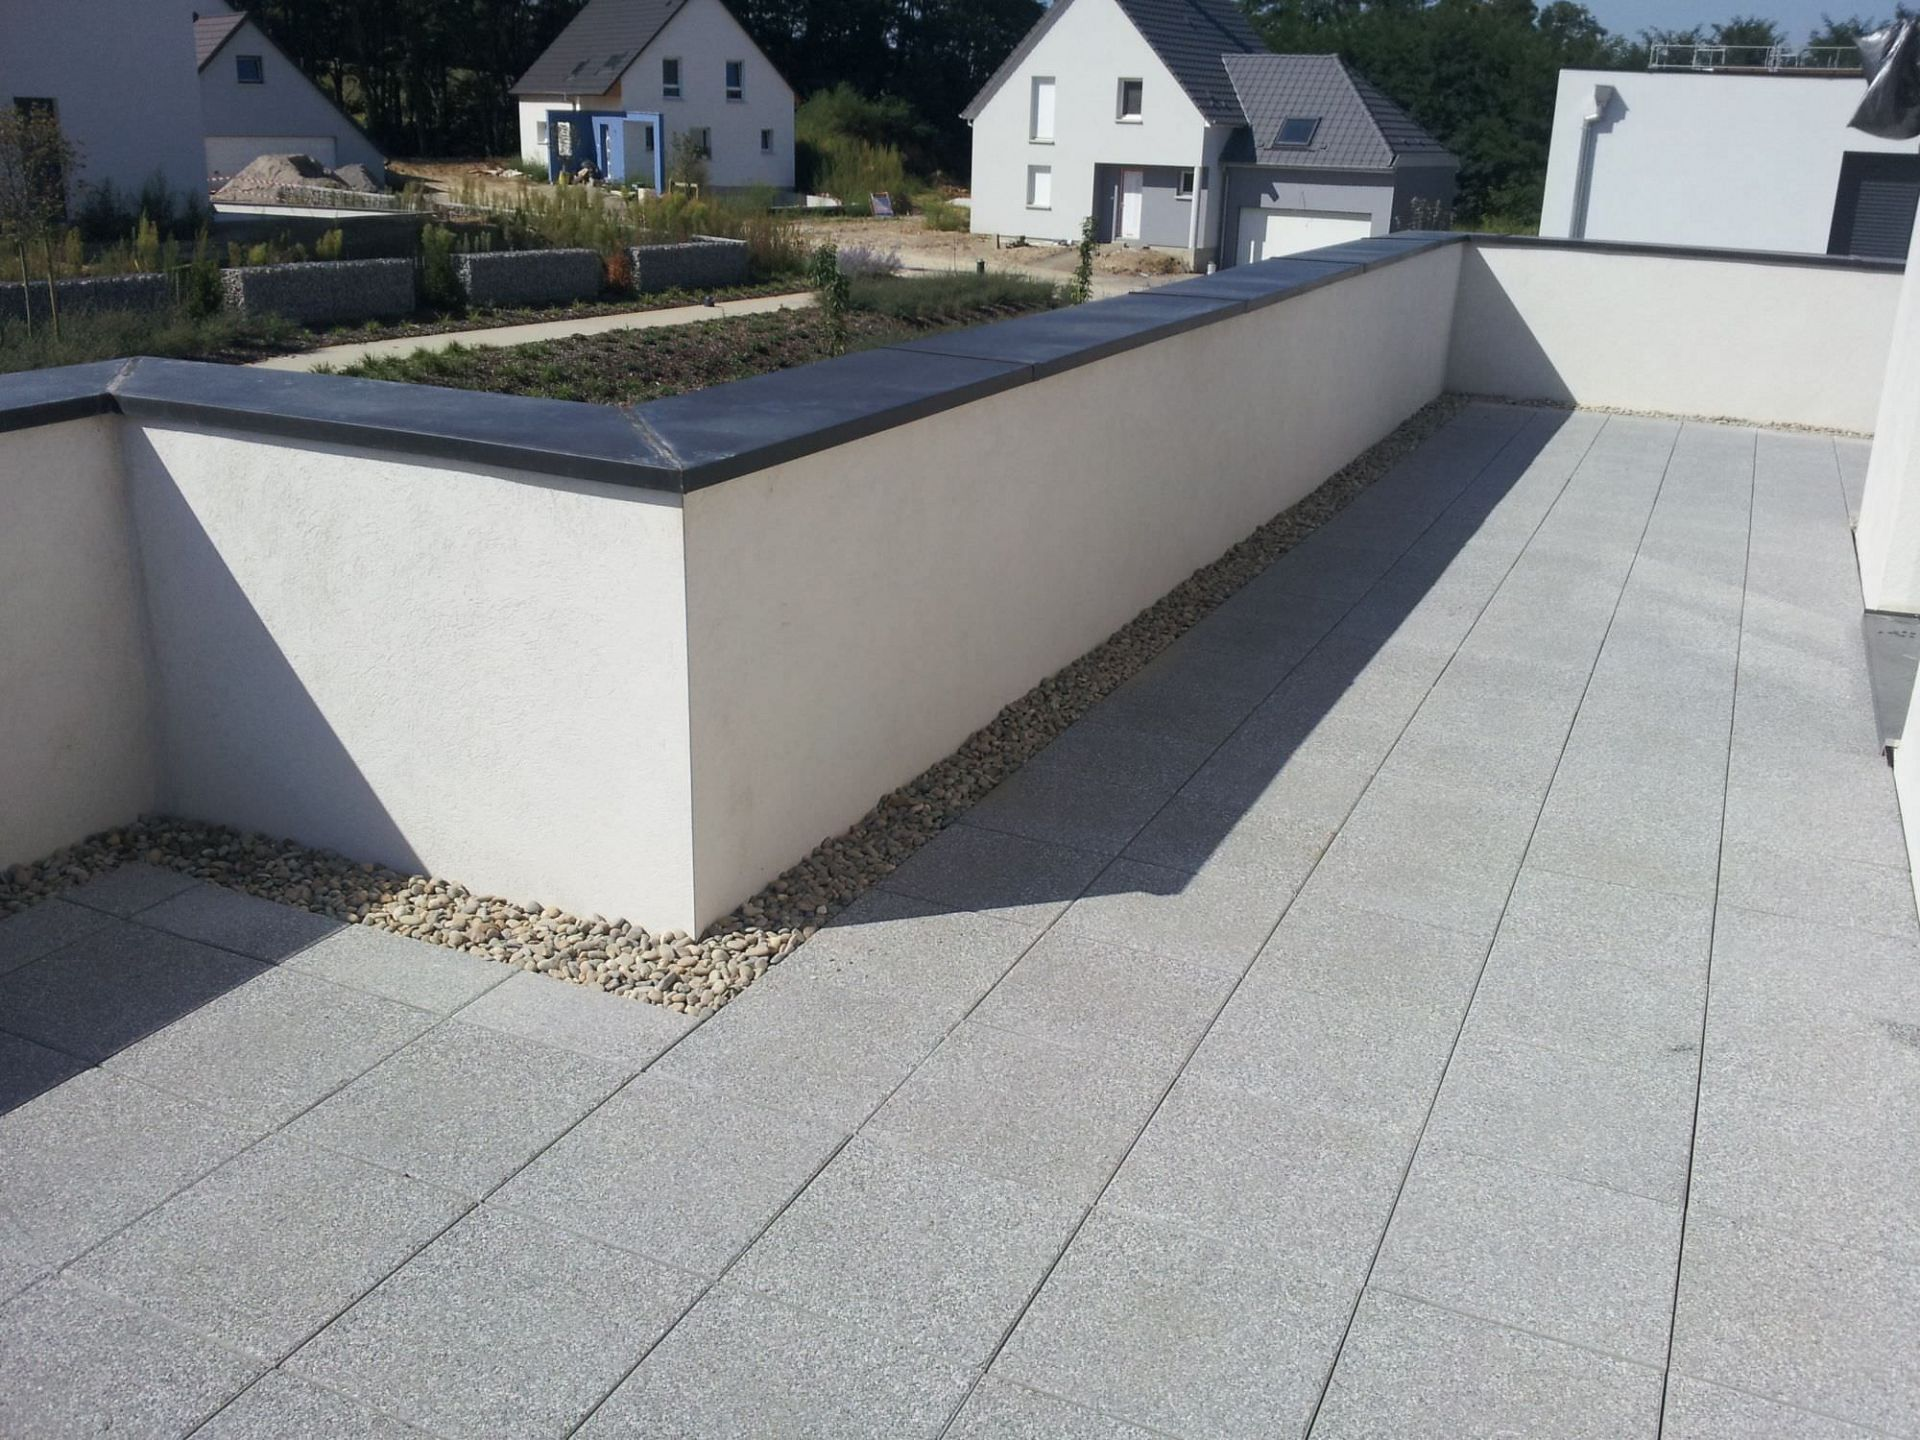 Terrasse dalle sur plot design id es de for Dalles de terrasse sur plots